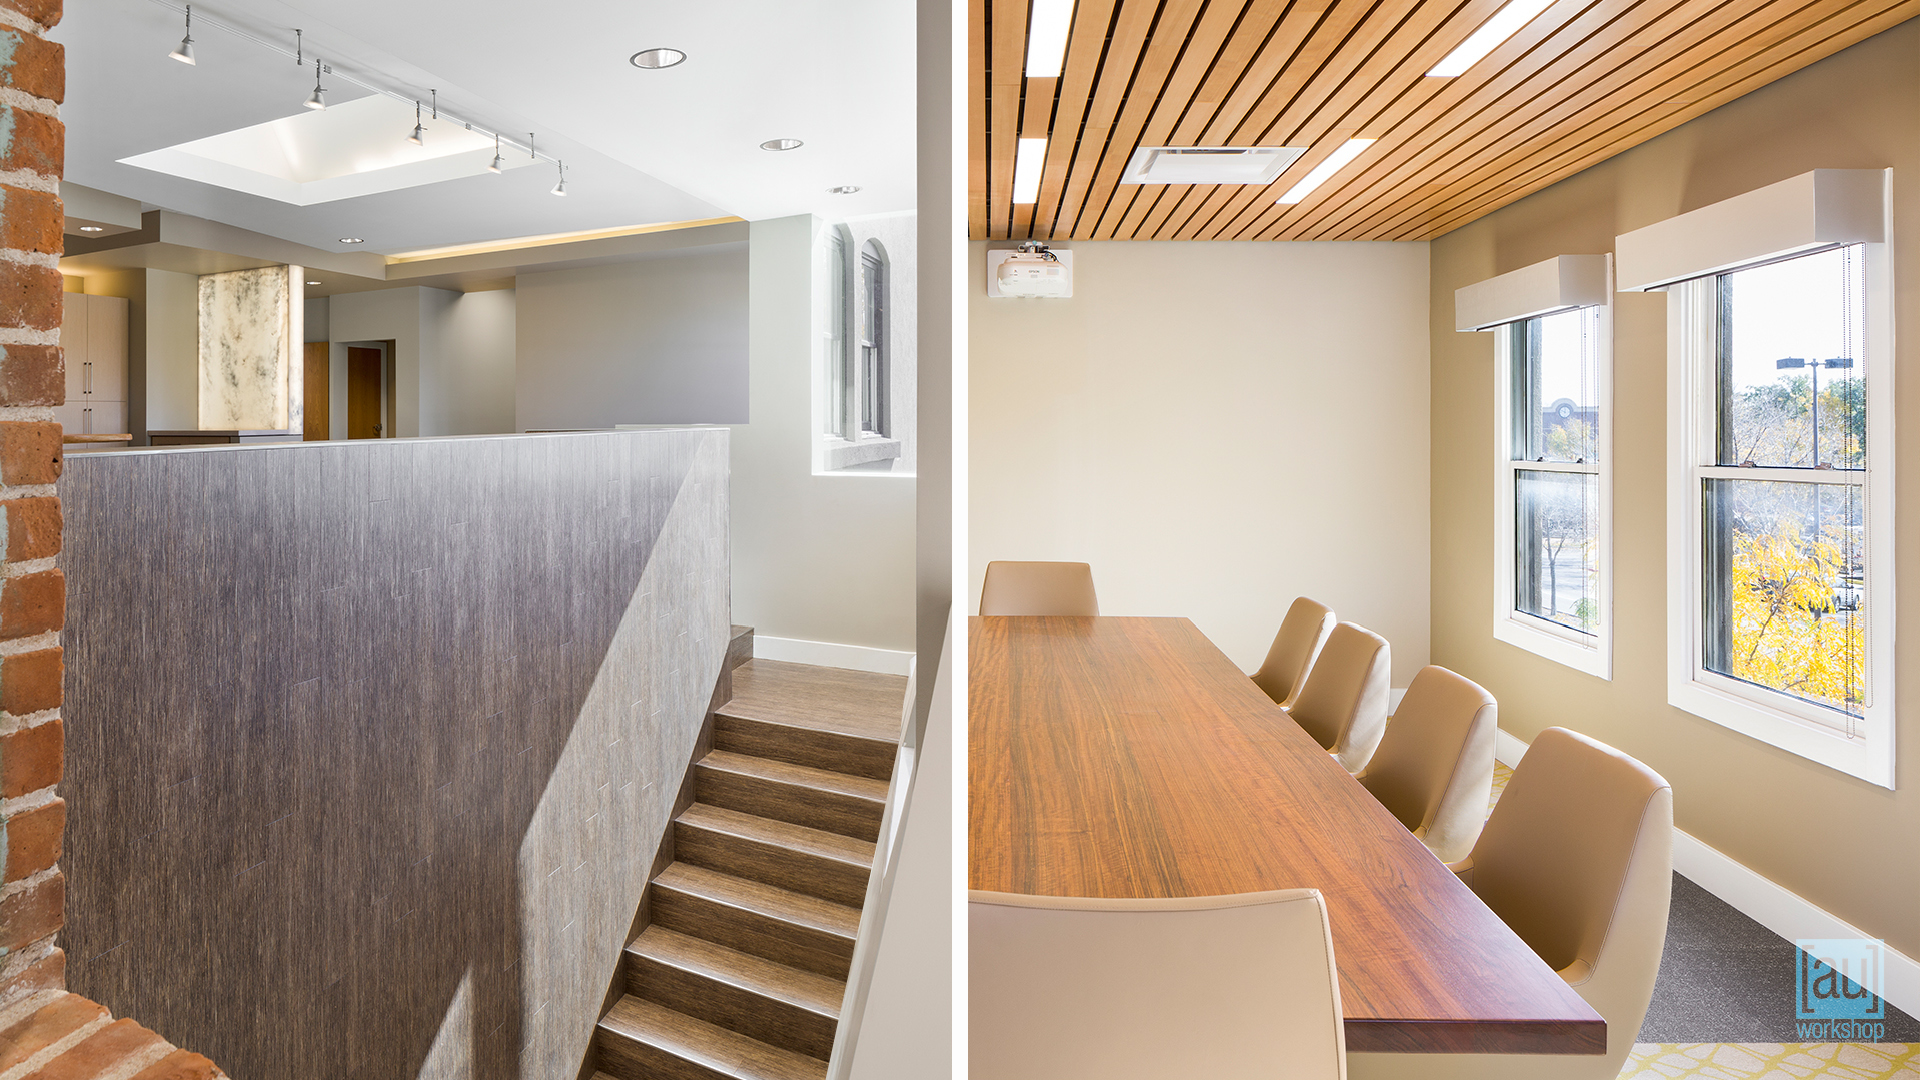 Interior Stair and Conference Room